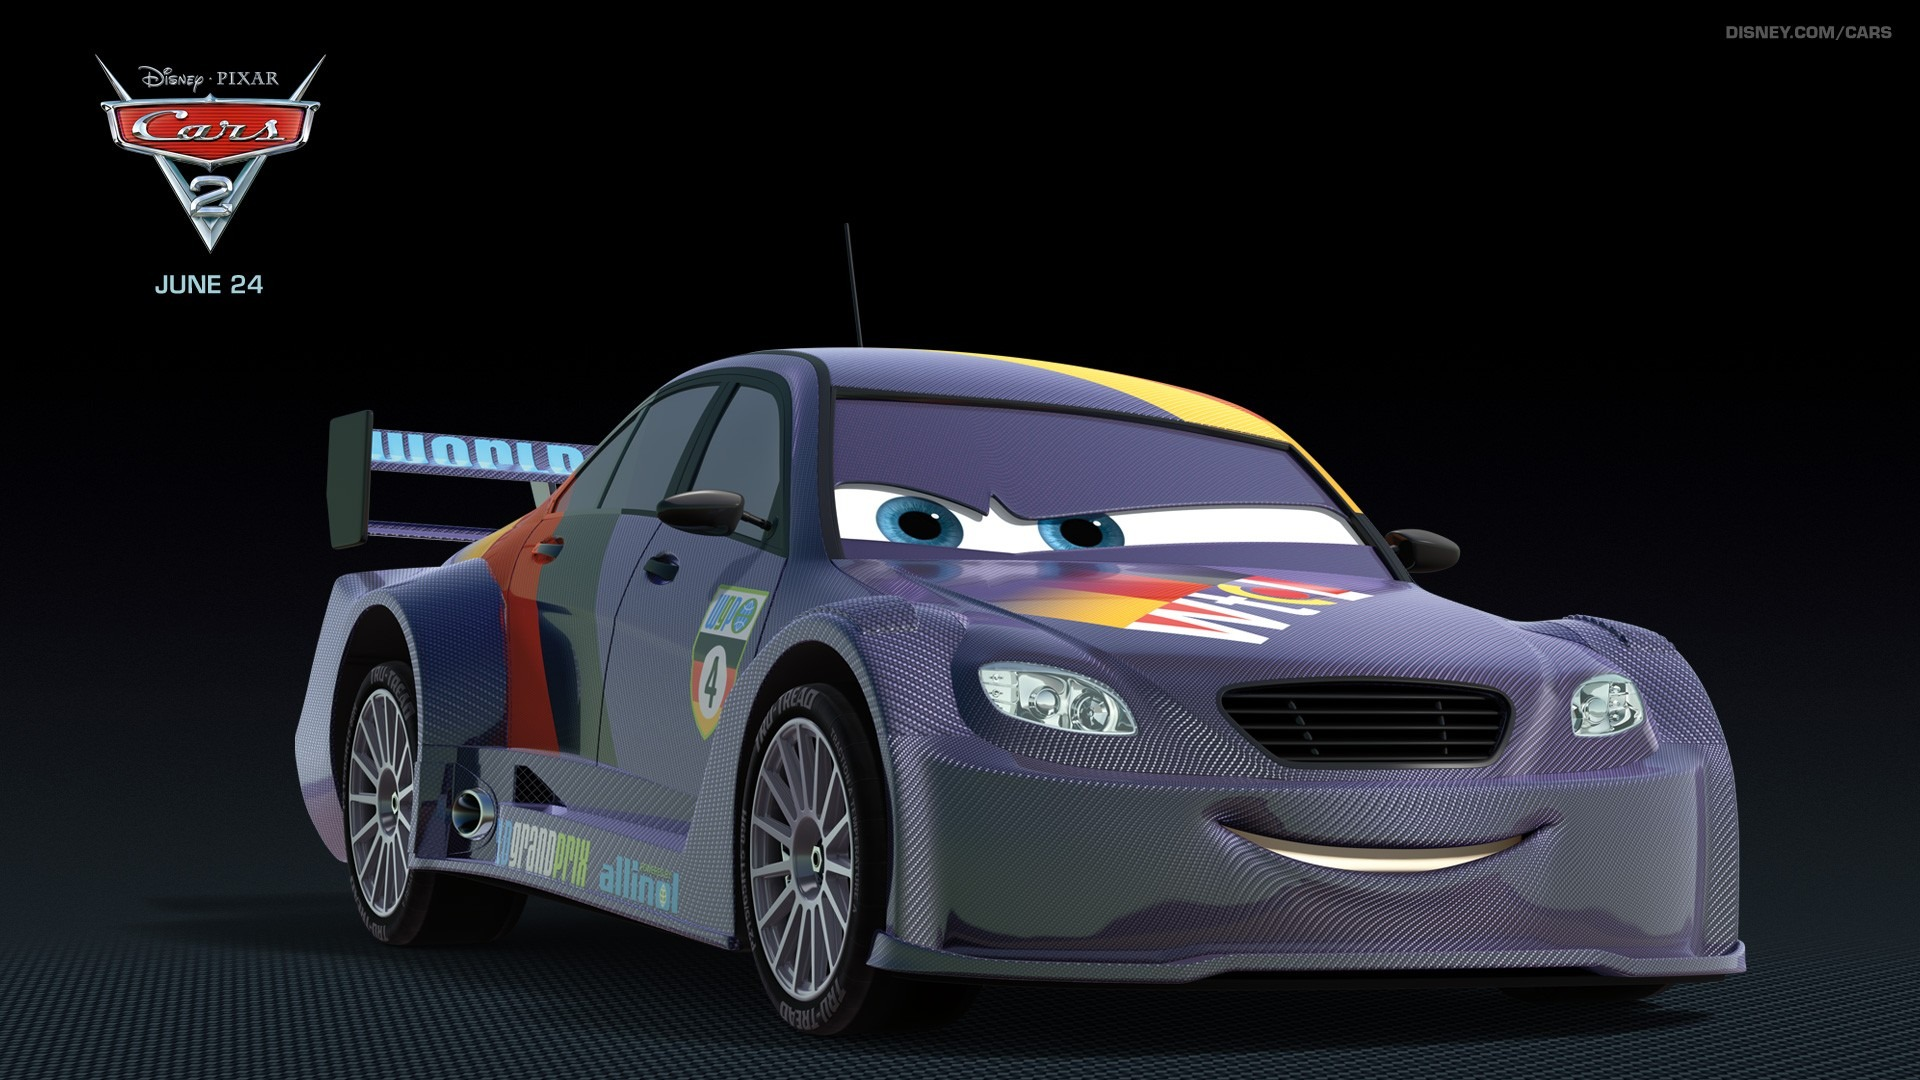 Cars2 Hd Movie Wallpapers 24 Preview 10wallpaper Com